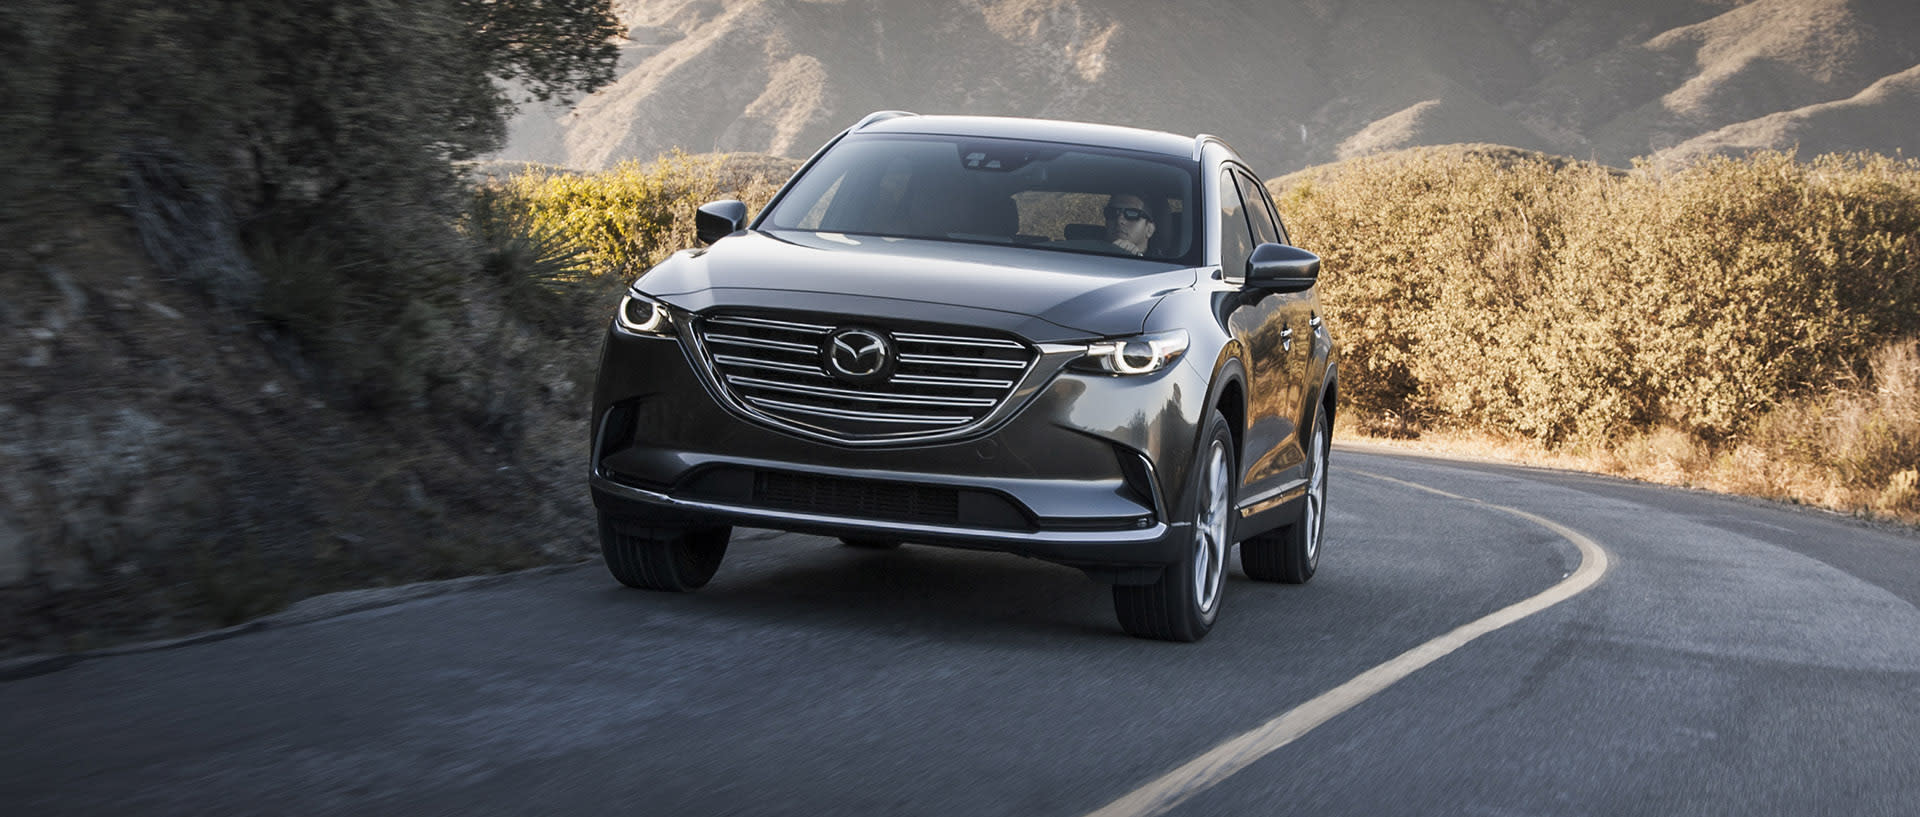 Flagship Reborn: Driving the Turbocharged 2017 Mazda CX-9